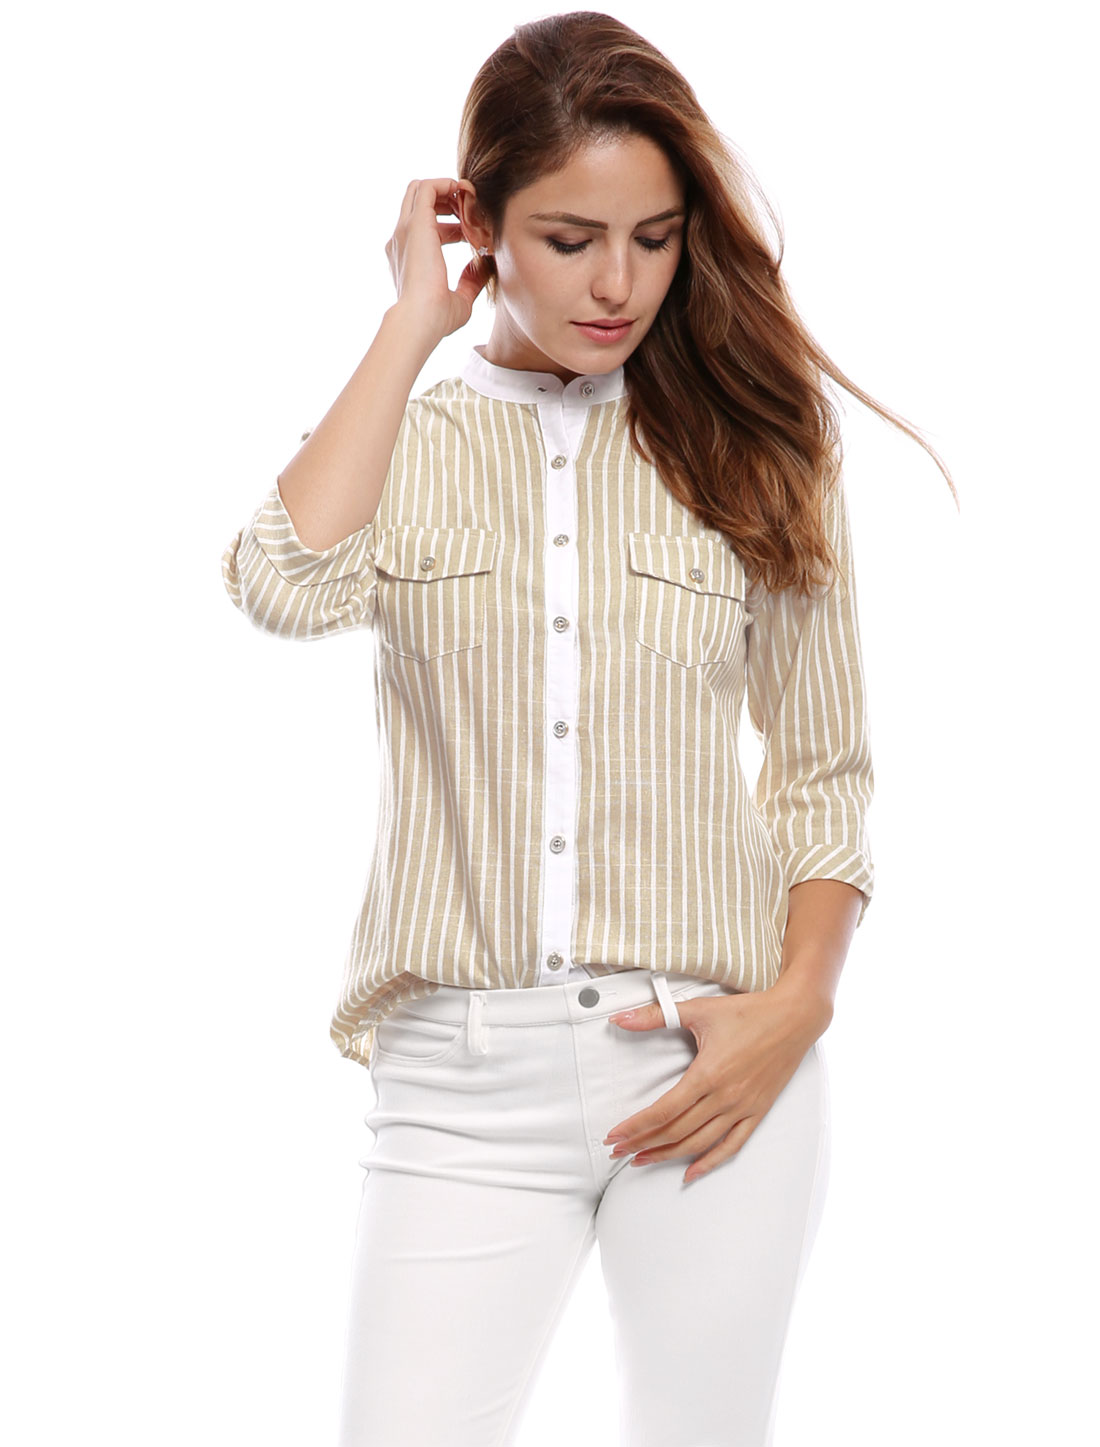 Woman Cuffed 3/4 Sleeves Stand Collar Buttoned Striped Shirt Beige S